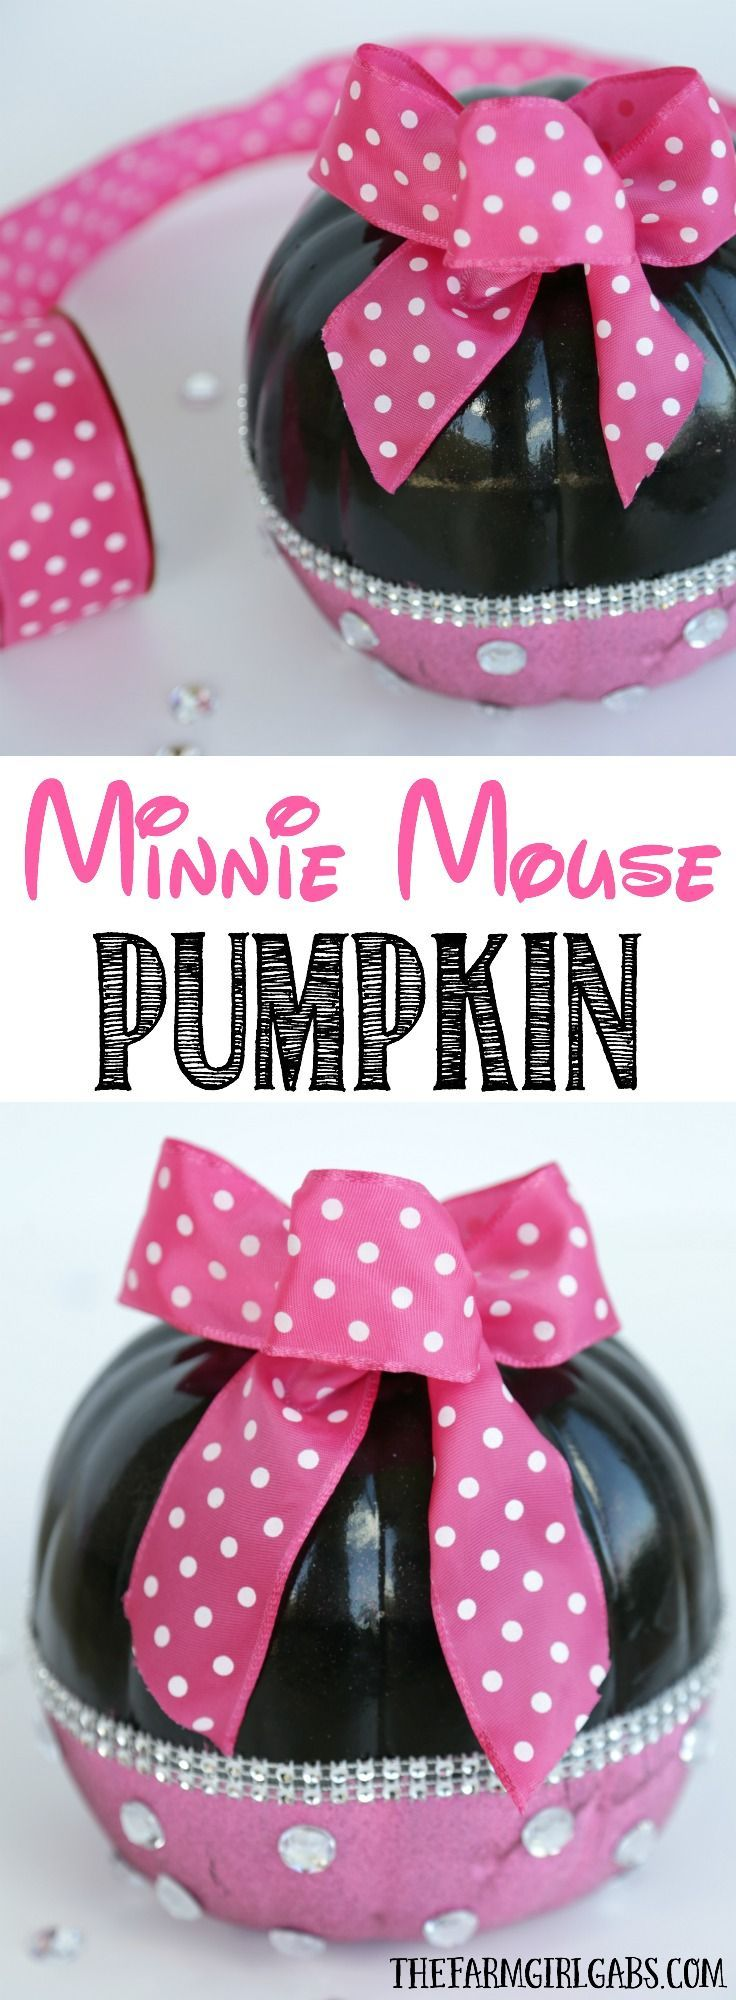 And fashion magic halloween pumpkins carving and decorating ideas - Diy Minnie Mouse Pumpkin